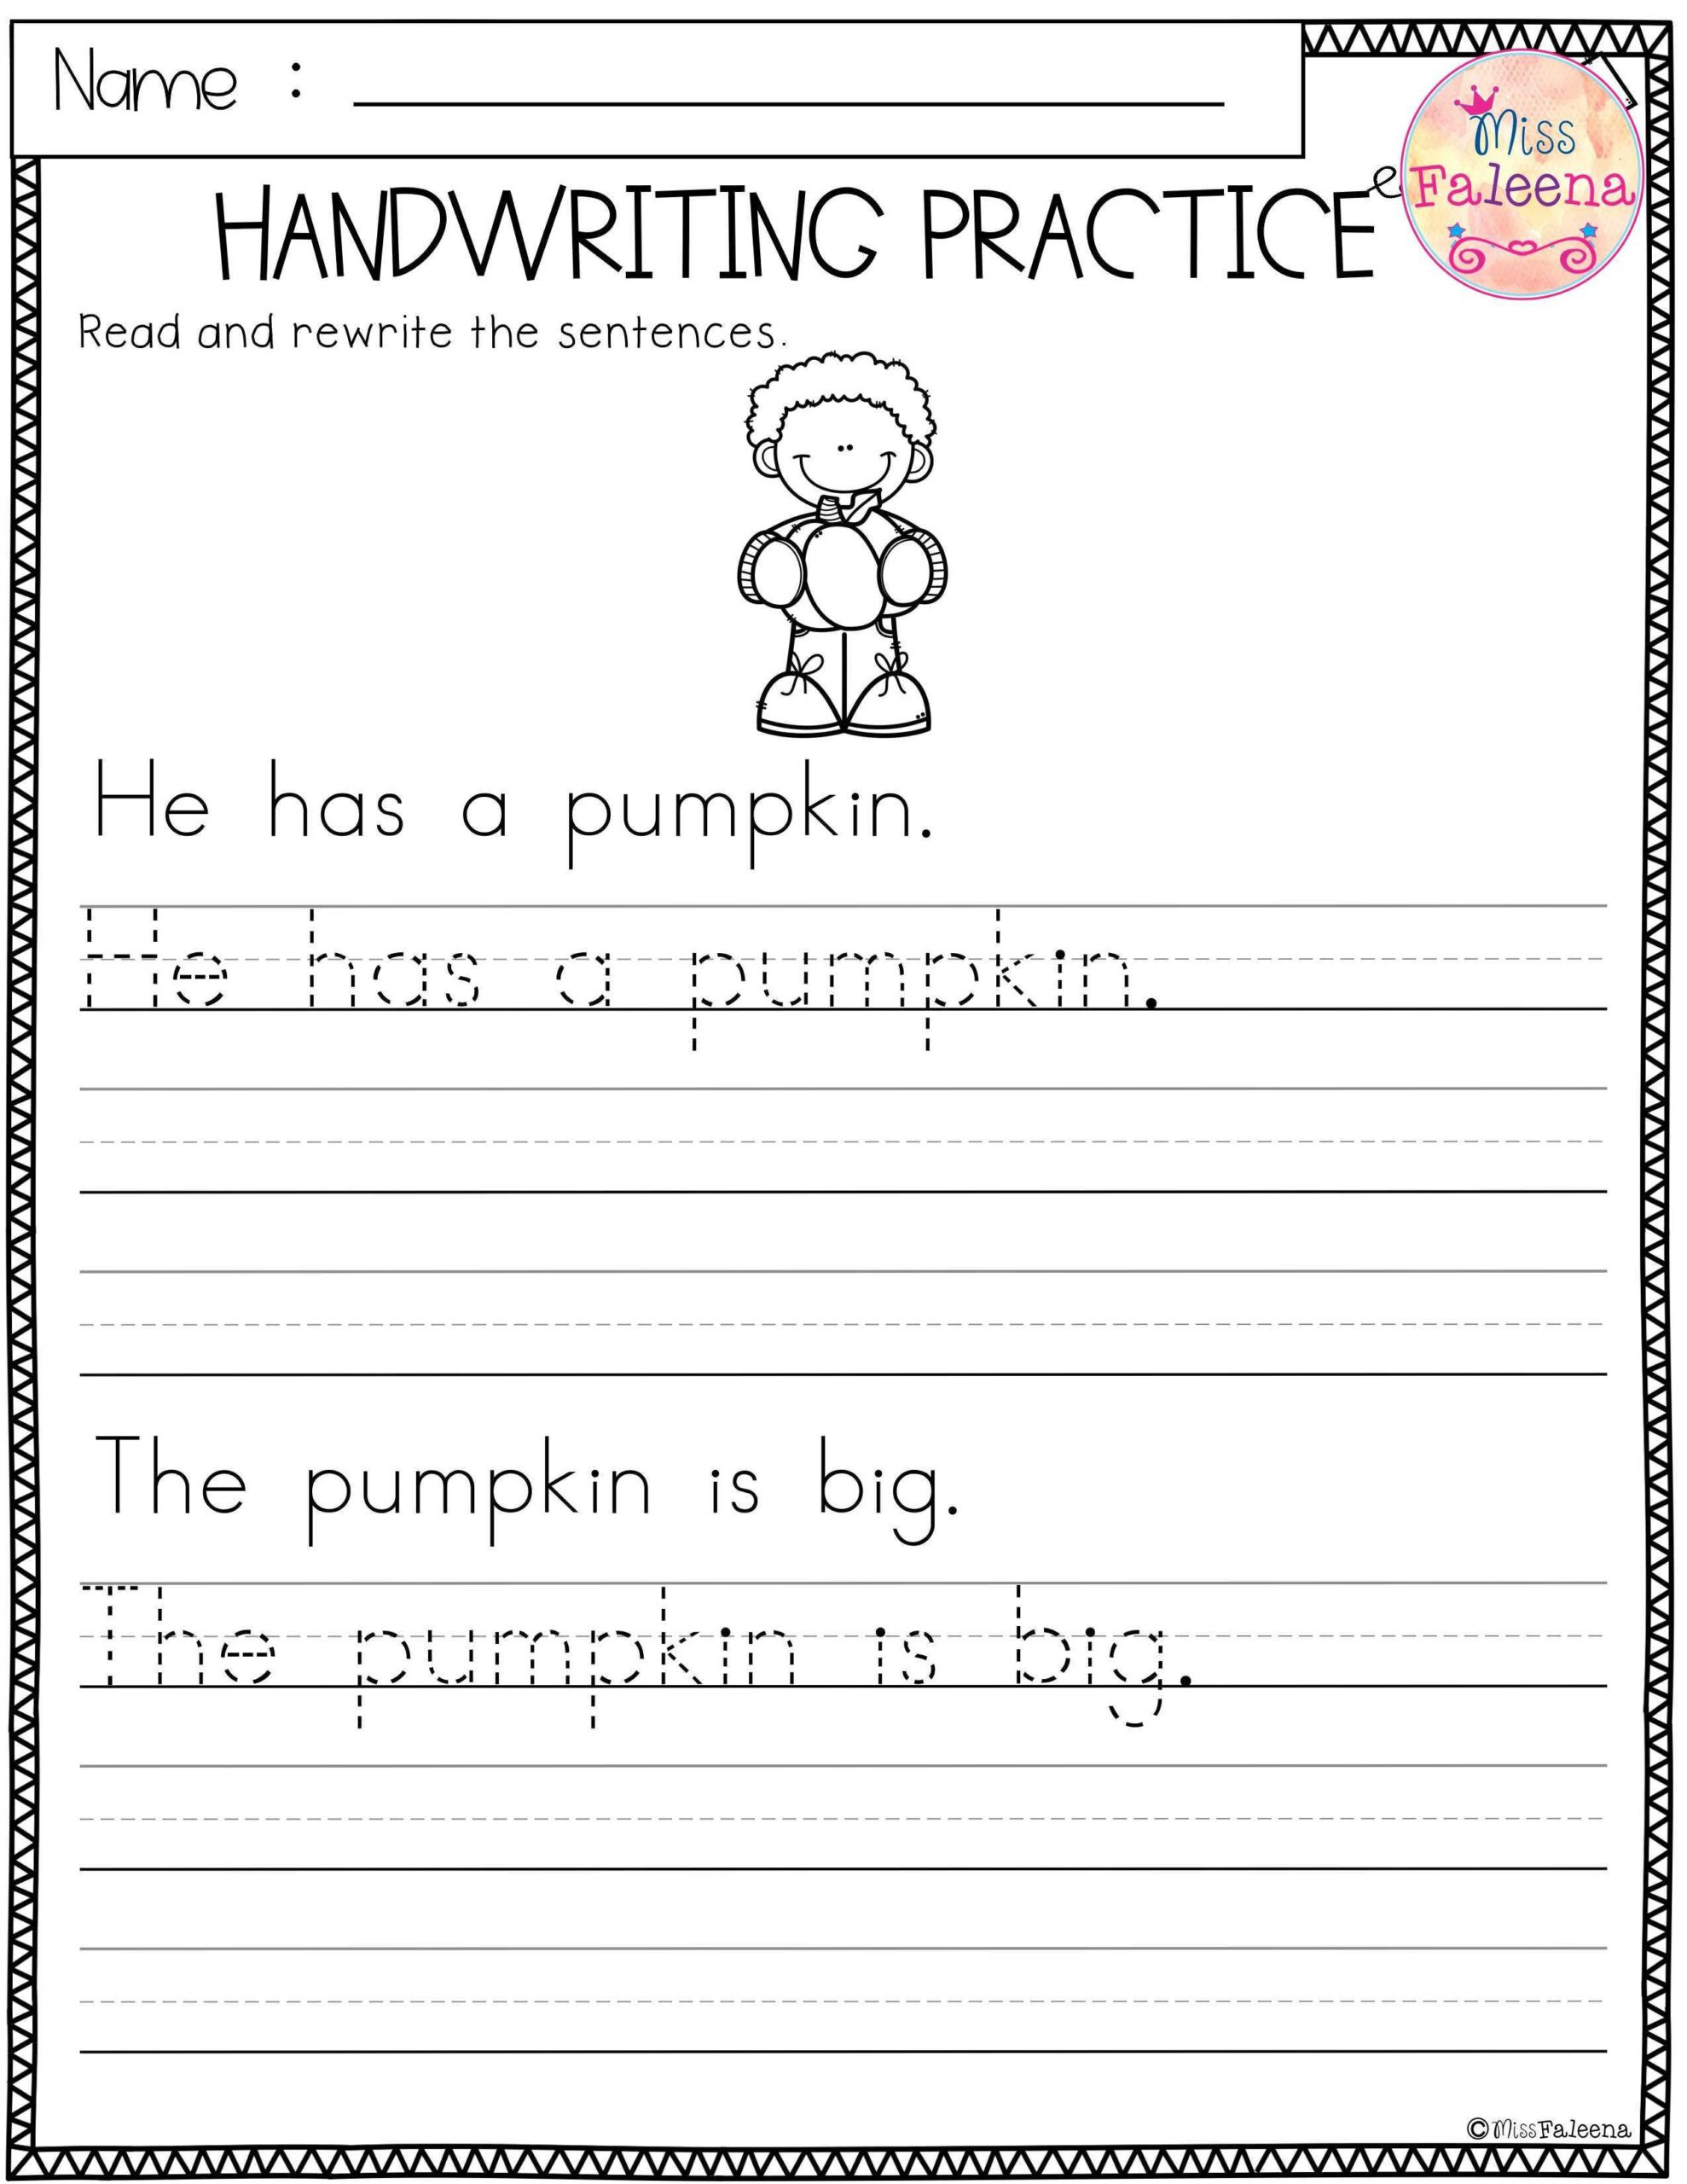 Handwriting Worksheets for Older Students Free Handwriting Practice Worksheets for Kindergarten